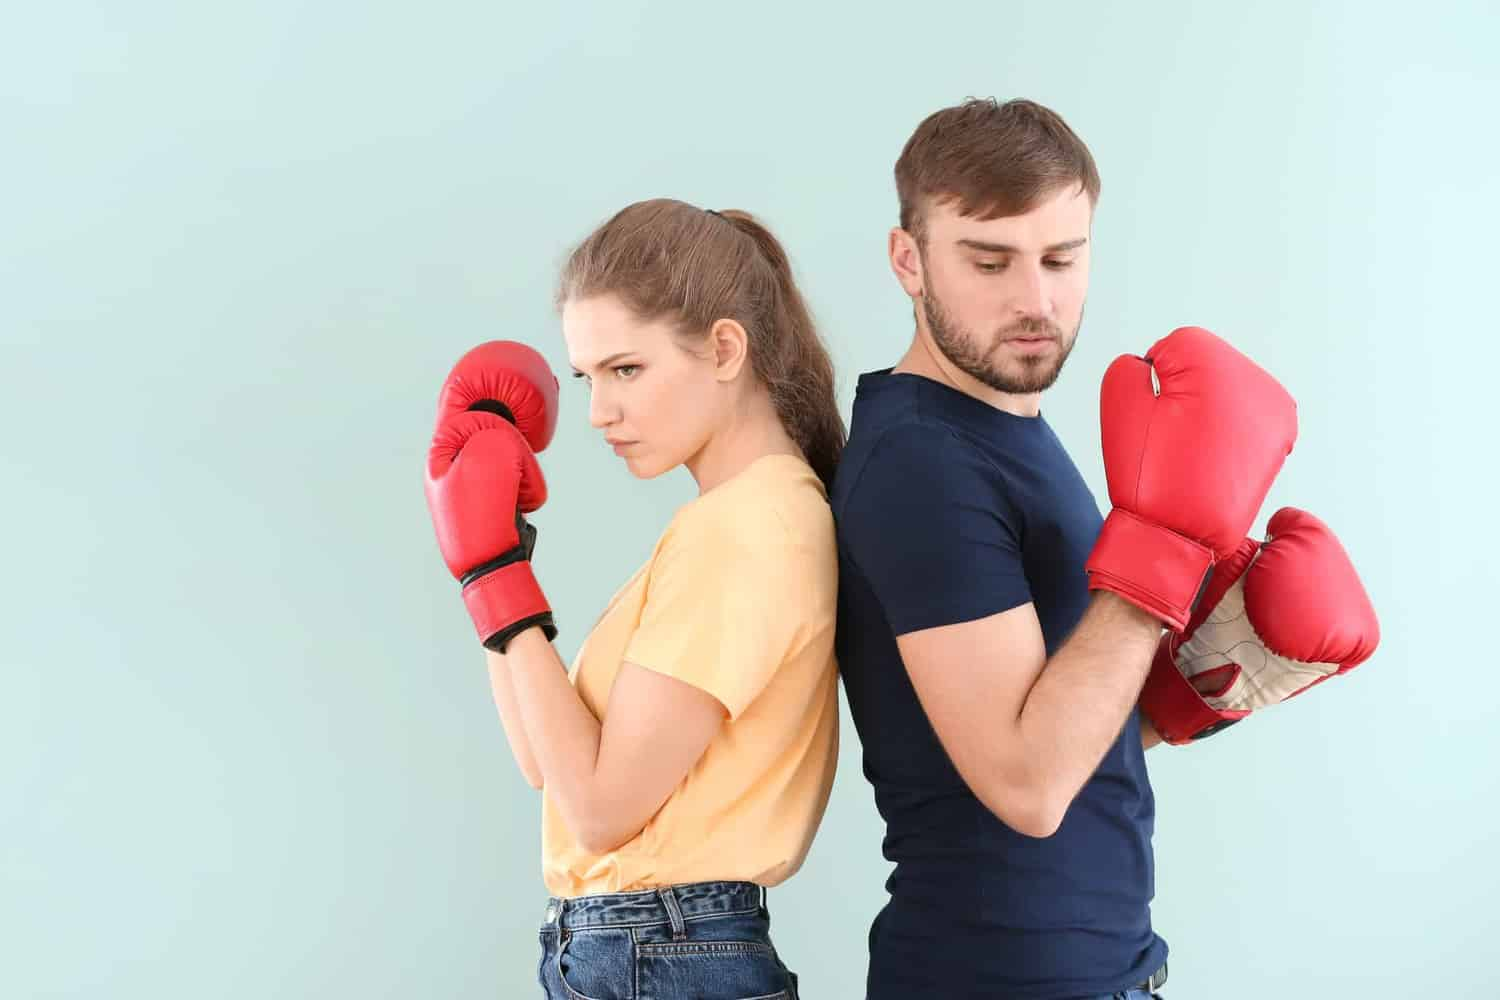 A man and a woman wearing boxing gloves, ready to fight.